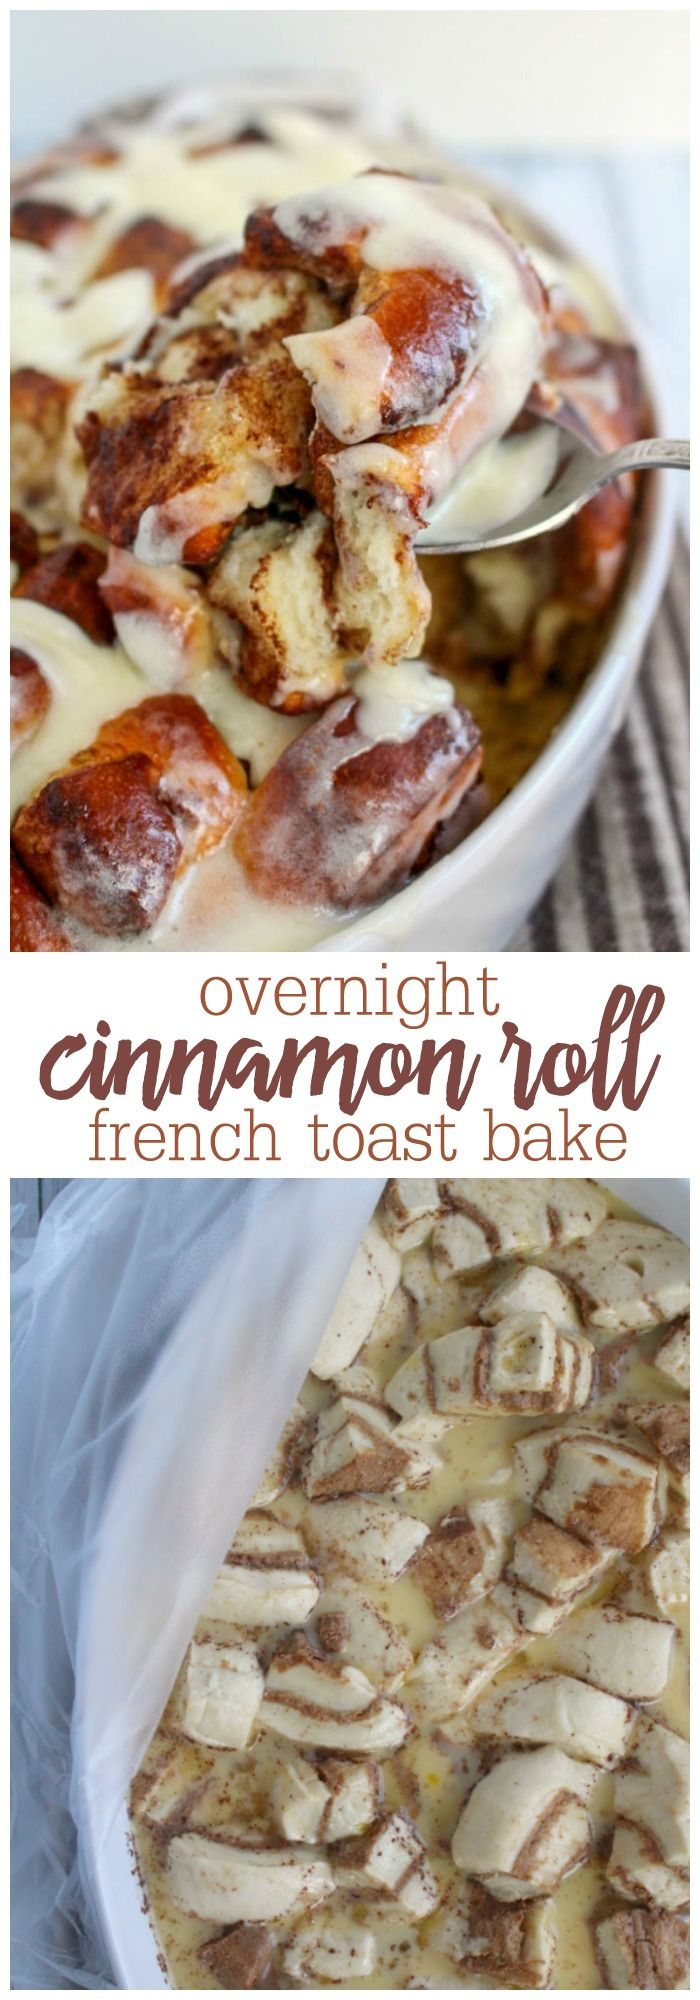 Can't decide between cinnamon rolls and french toast for breakfast? Now you don't have to with my Overnight Cinnamon Roll French Toast Bake! Super-easy to make, using frozen cinnamon rolls, this overnight dish is perfect for company or anytime you want to treat your family to a delicious breakfast or brunch.